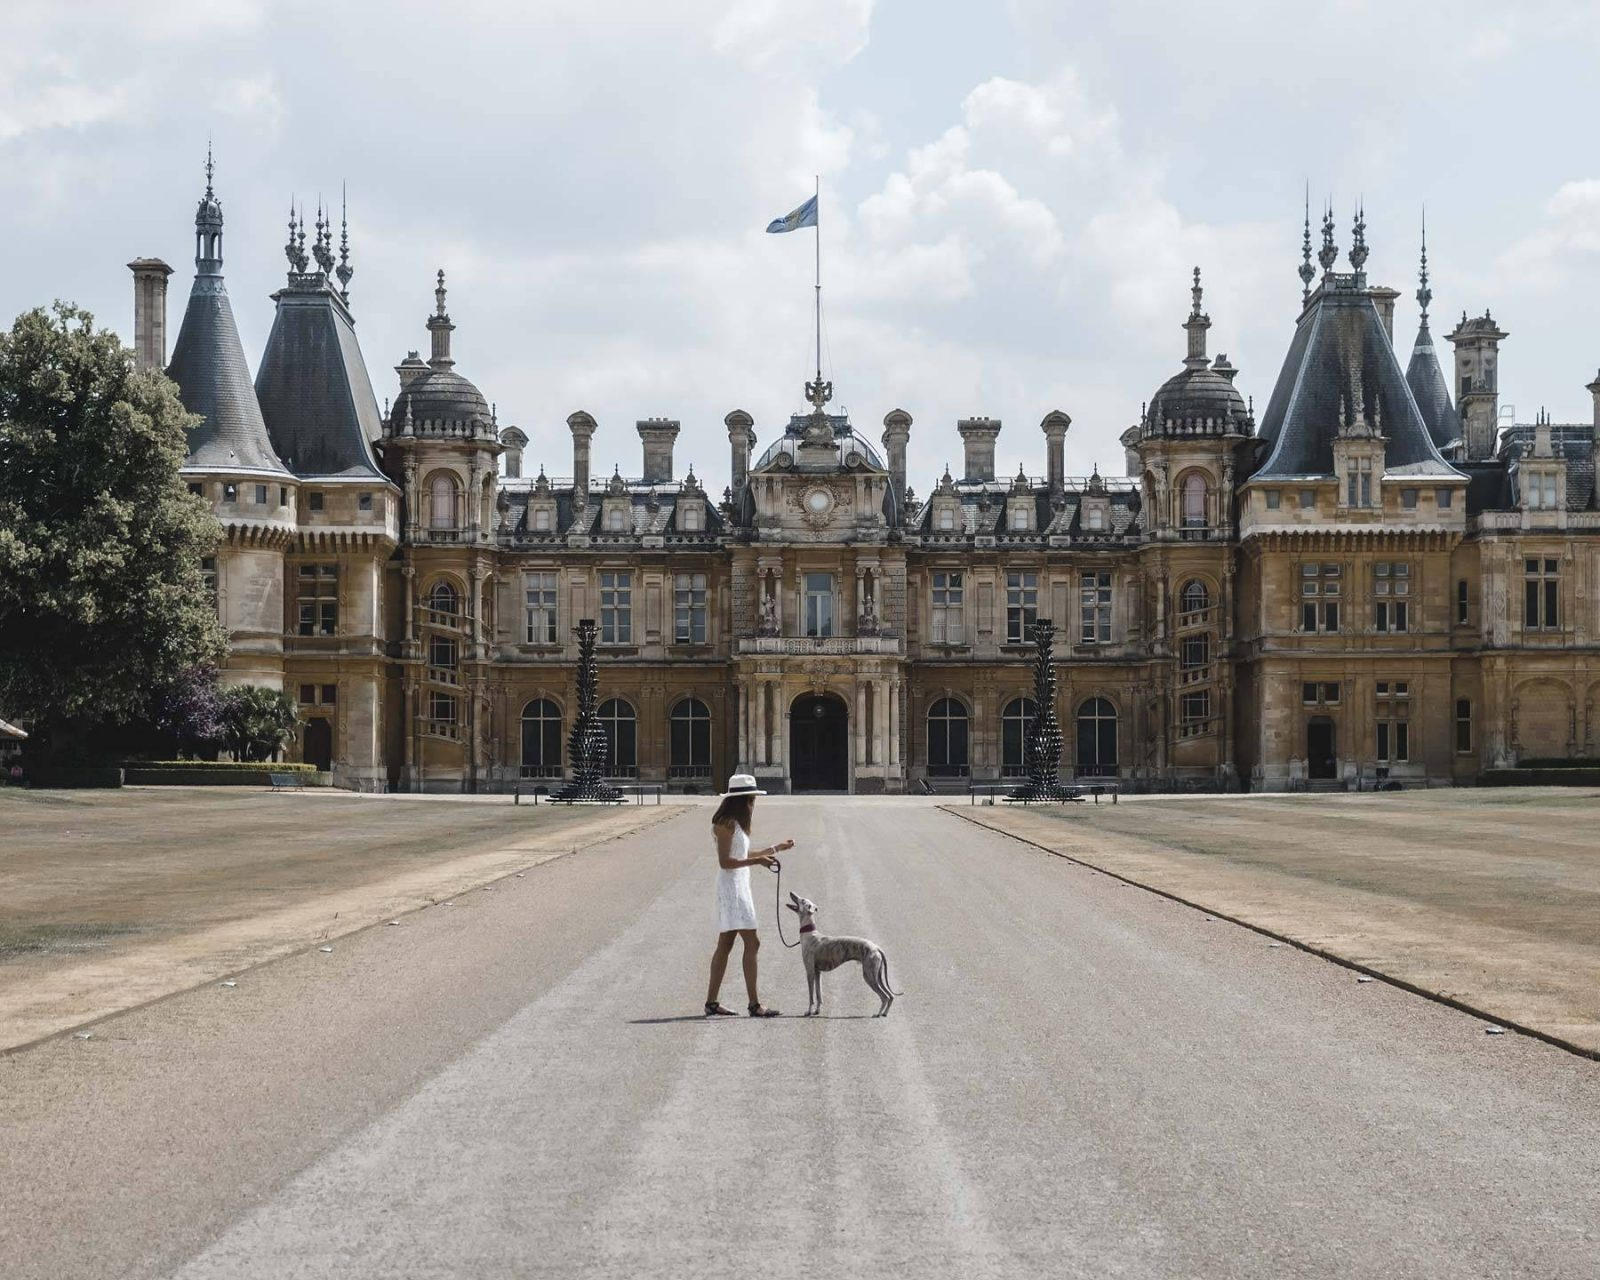 National Trust, Beautiful Manor House, England Travel, Waddesdon-Manor-estate-England-National-Trust-property-beautiful-houses-of-England-London-blog-Katya-jackson